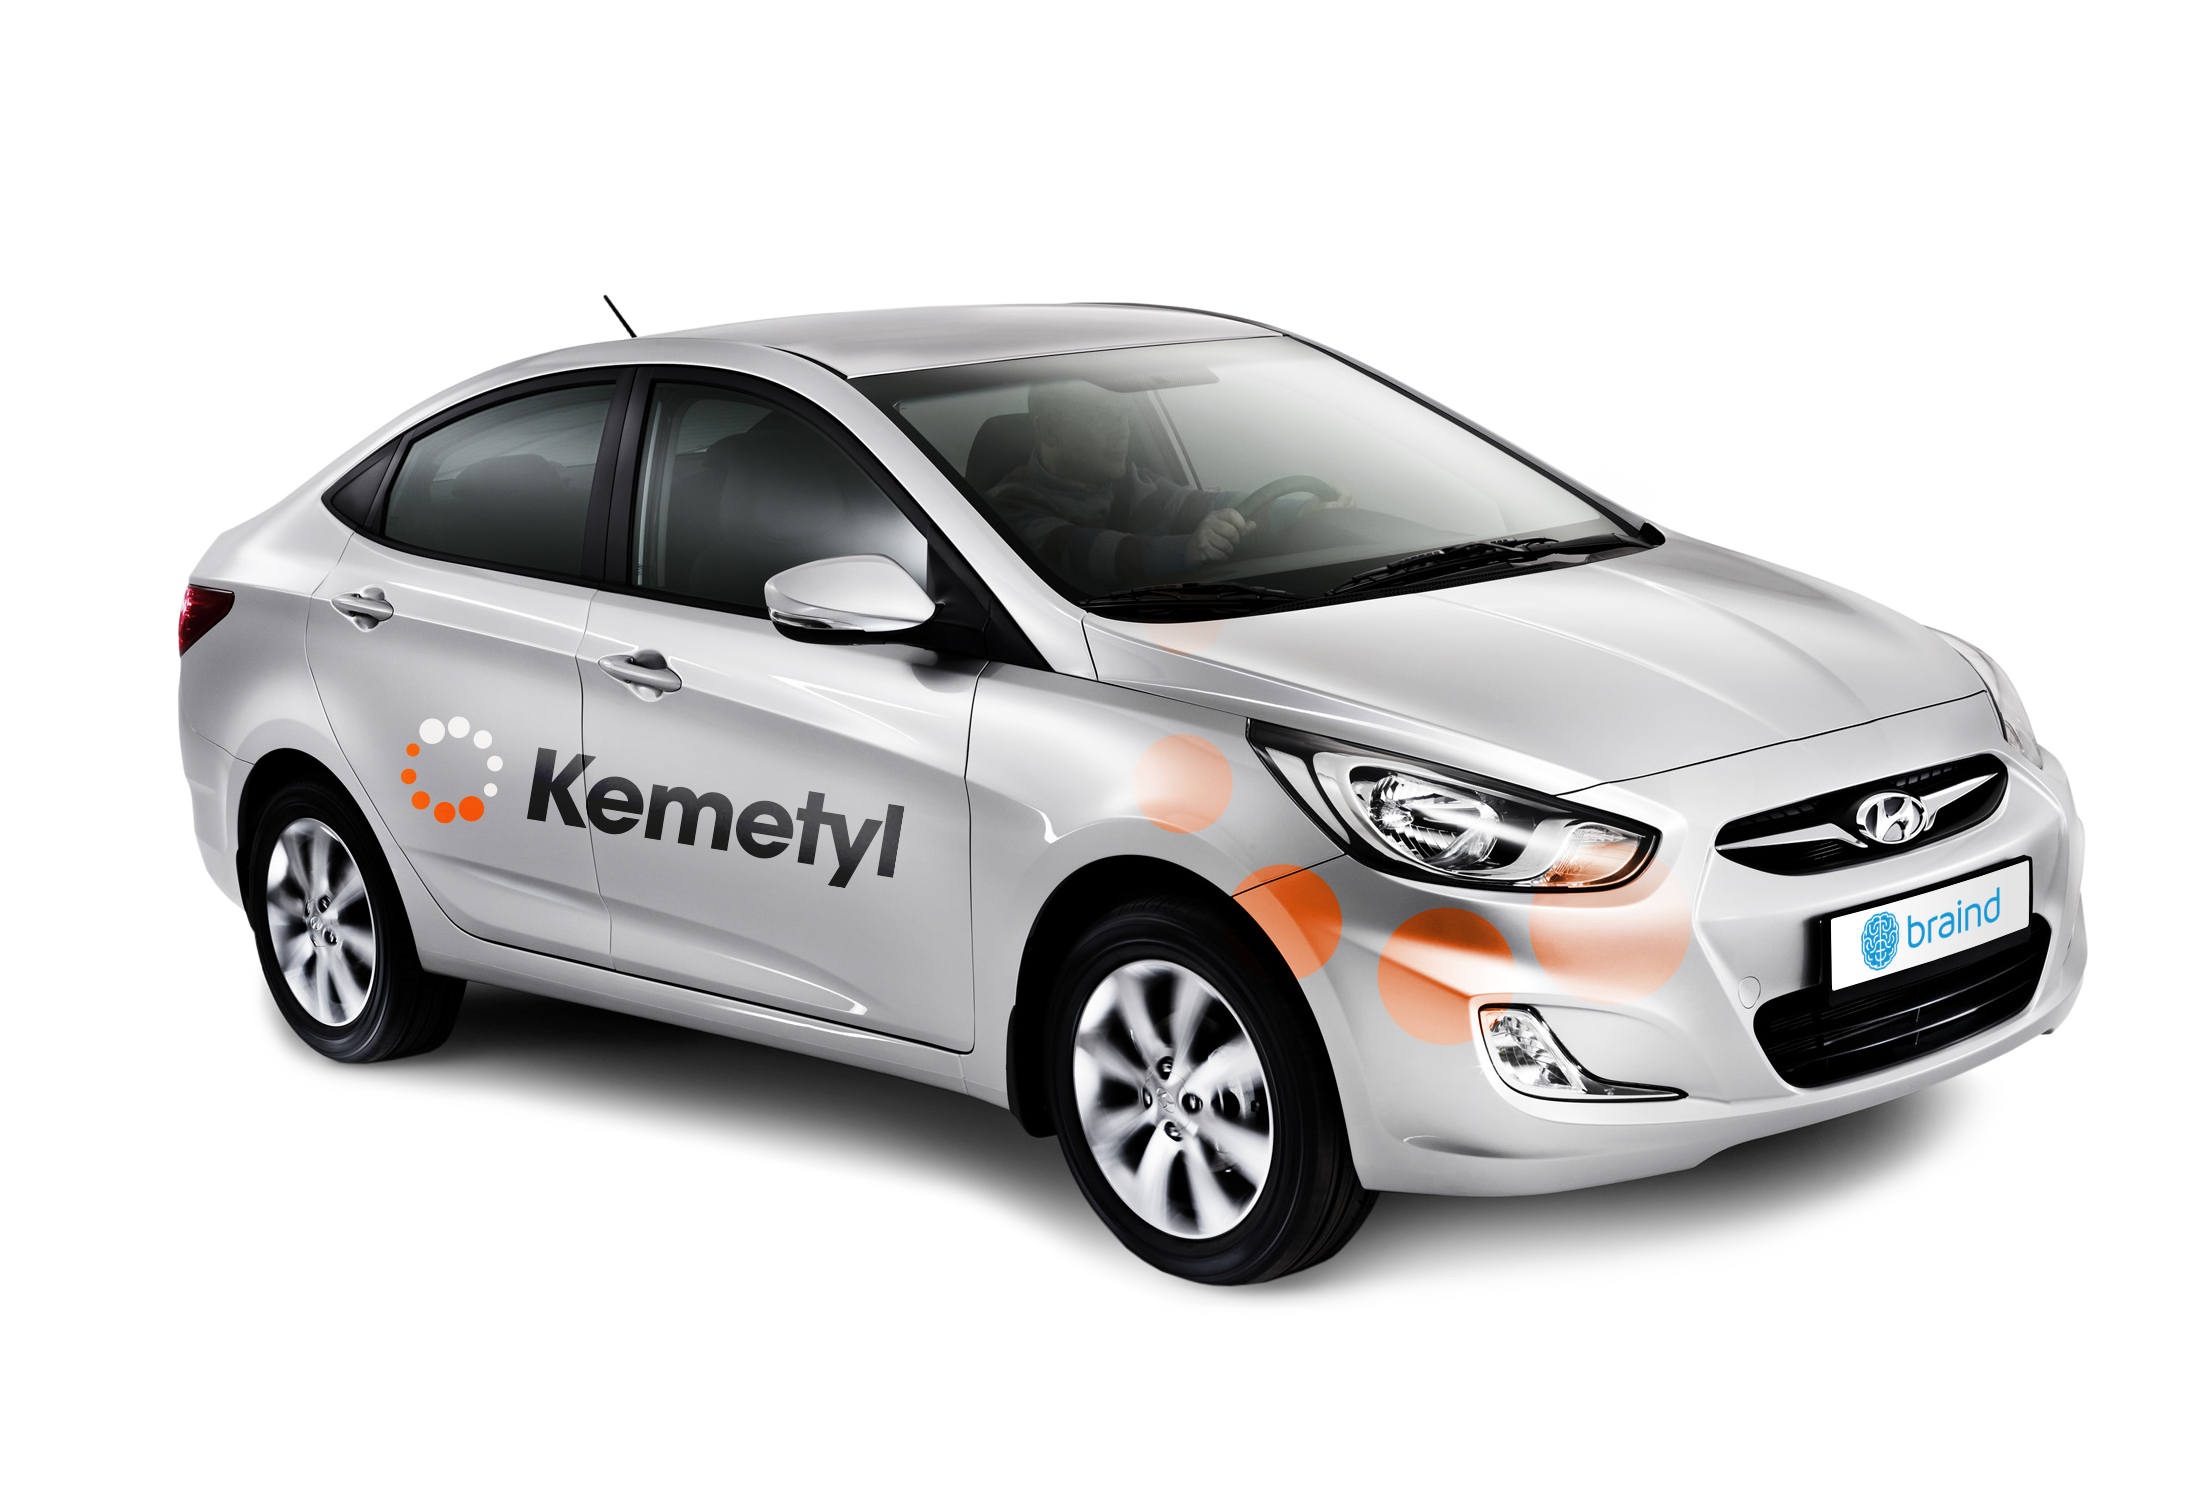 image of Kemetyl car design mockup